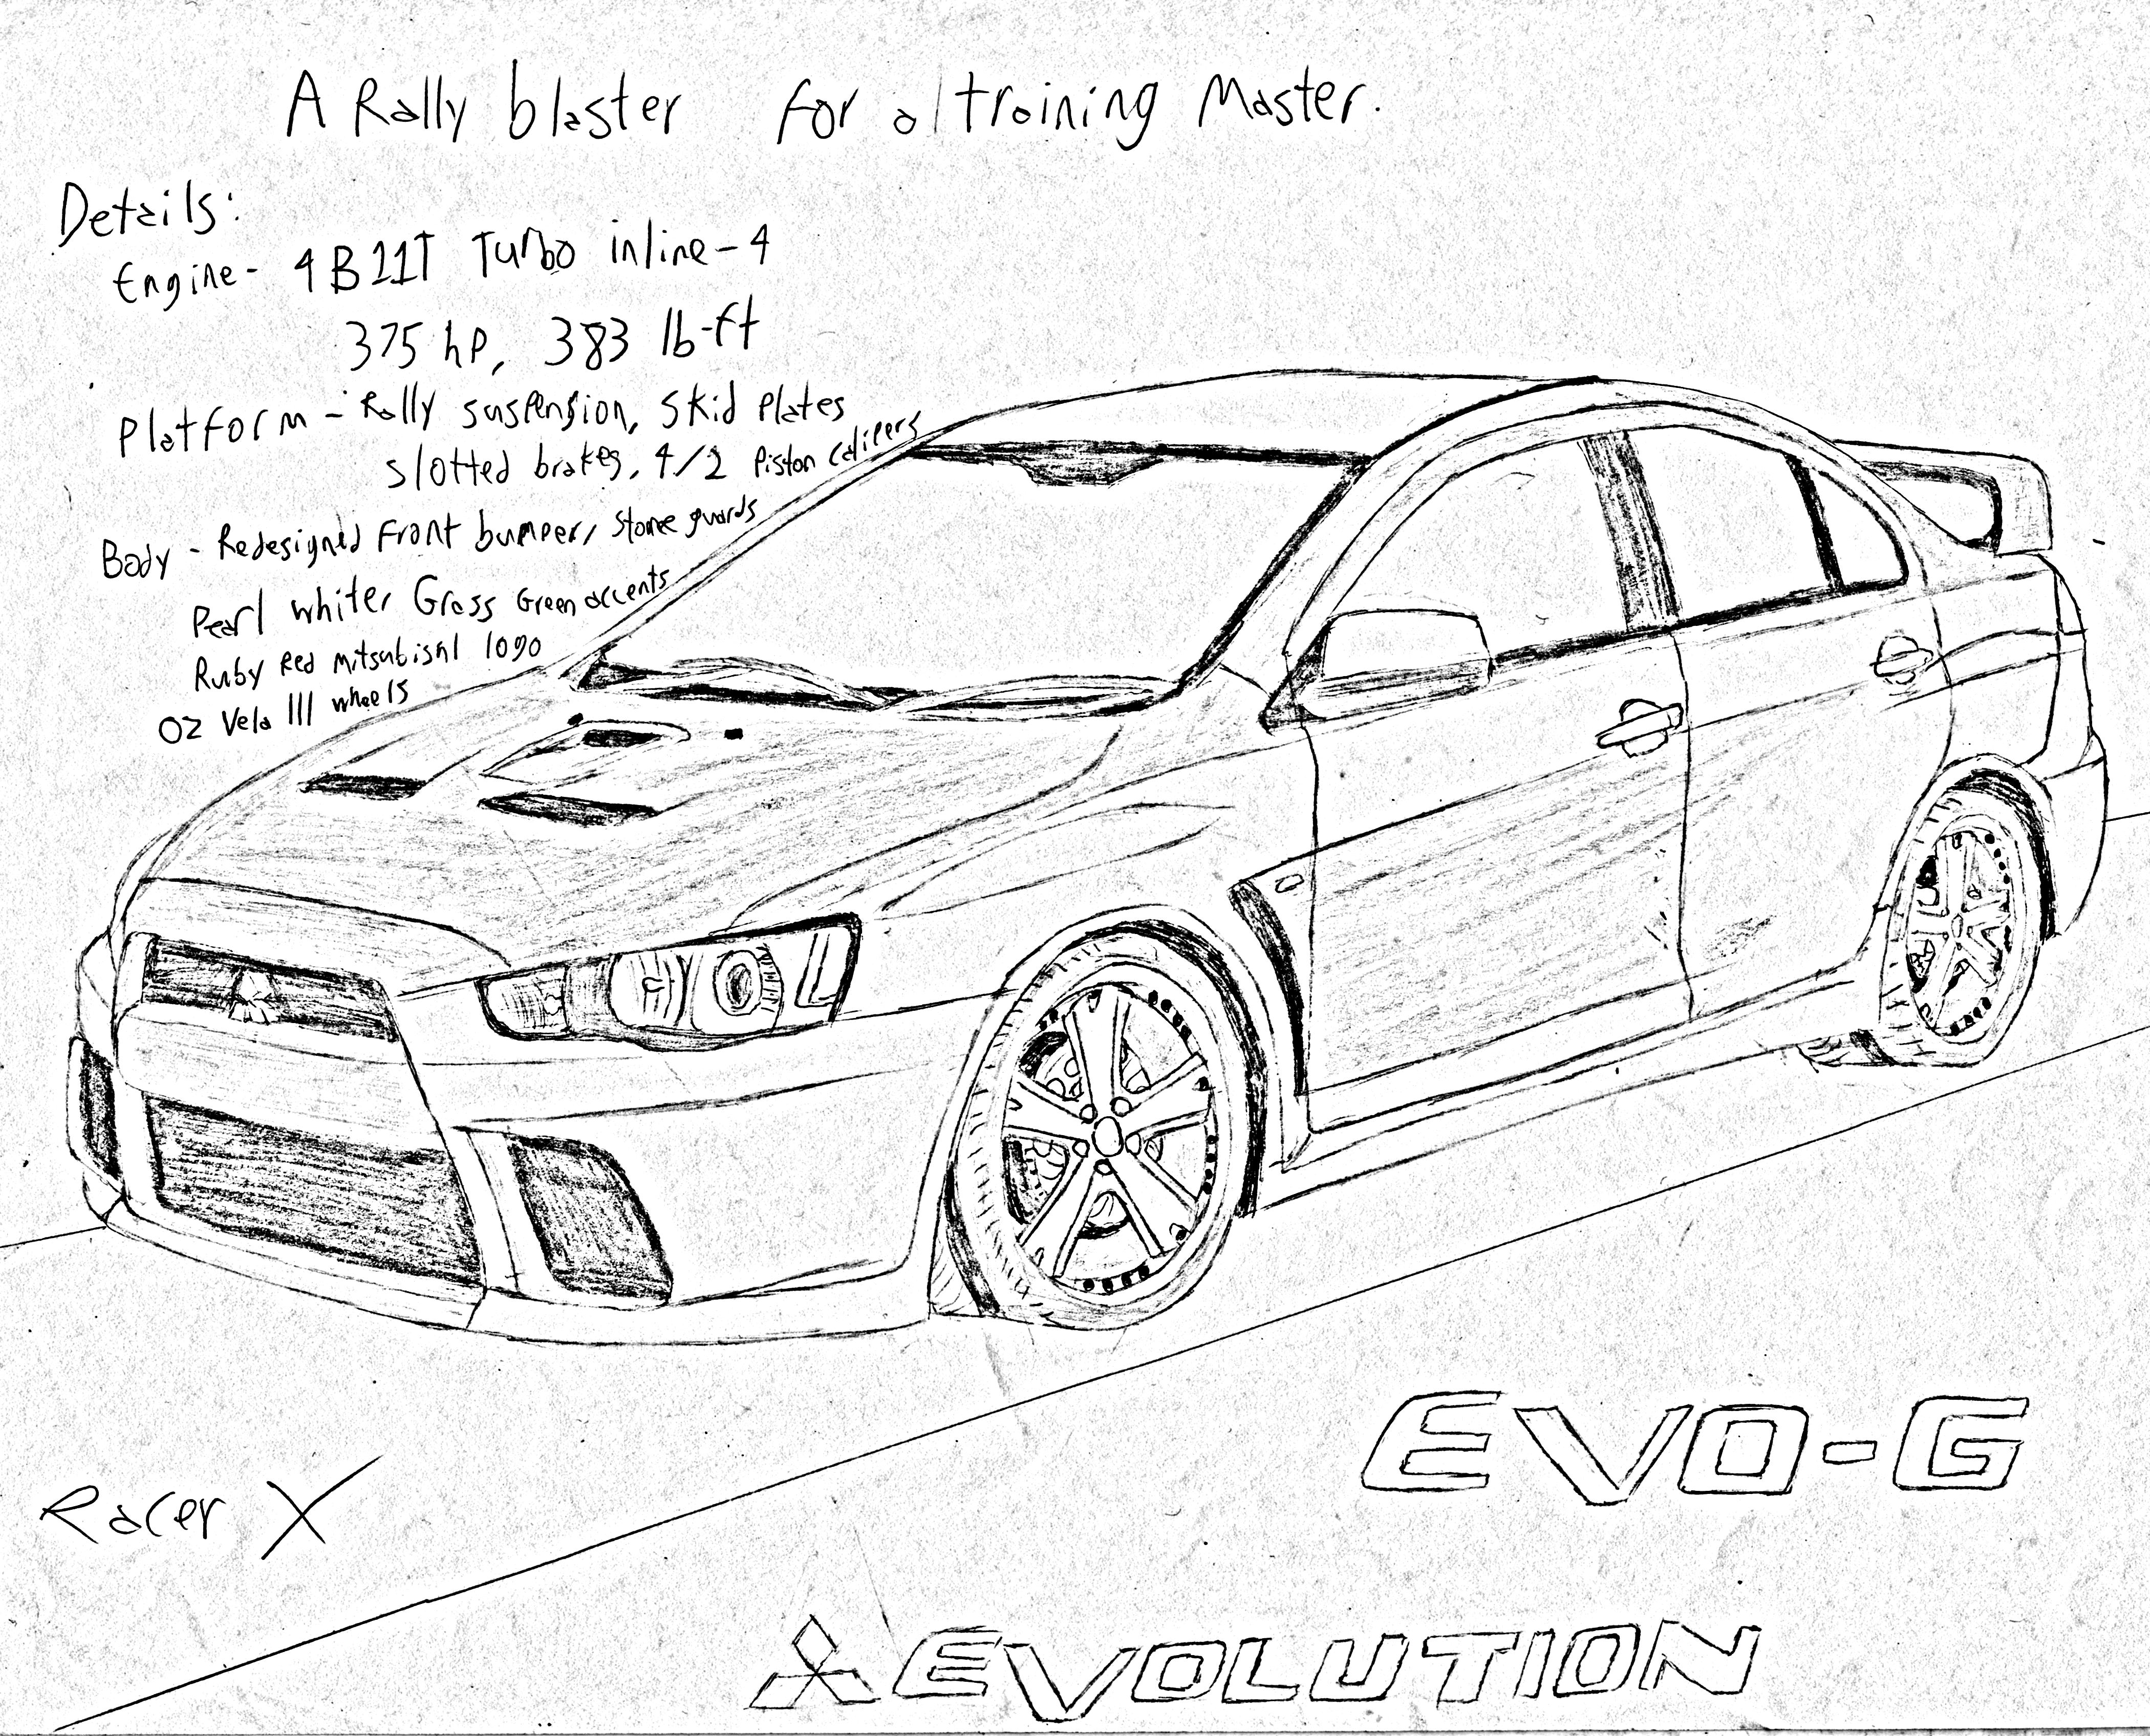 Dirt Modified Drawing at GetDrawings com | Free for personal use